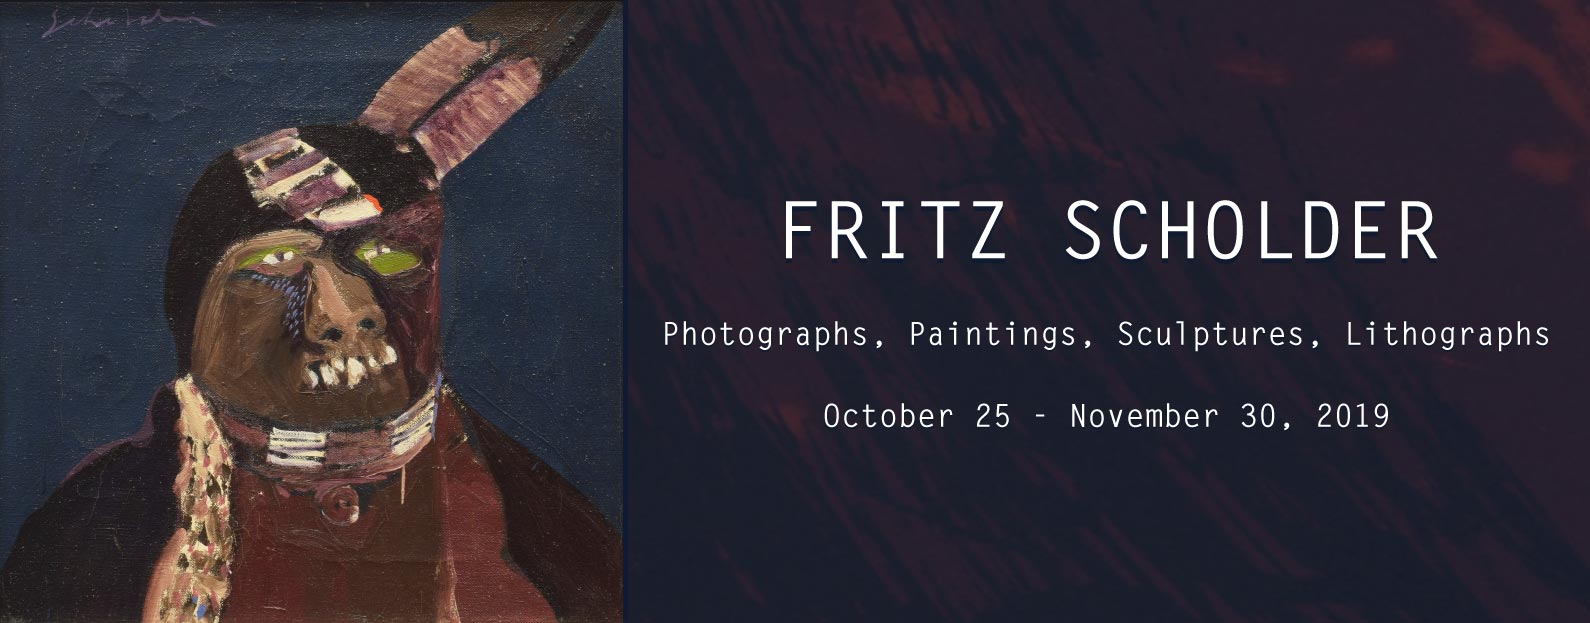 FRITZ SCHOLDER Photographs, Paintings, Sculptures, Lithographs October 25 - November 30, 2019